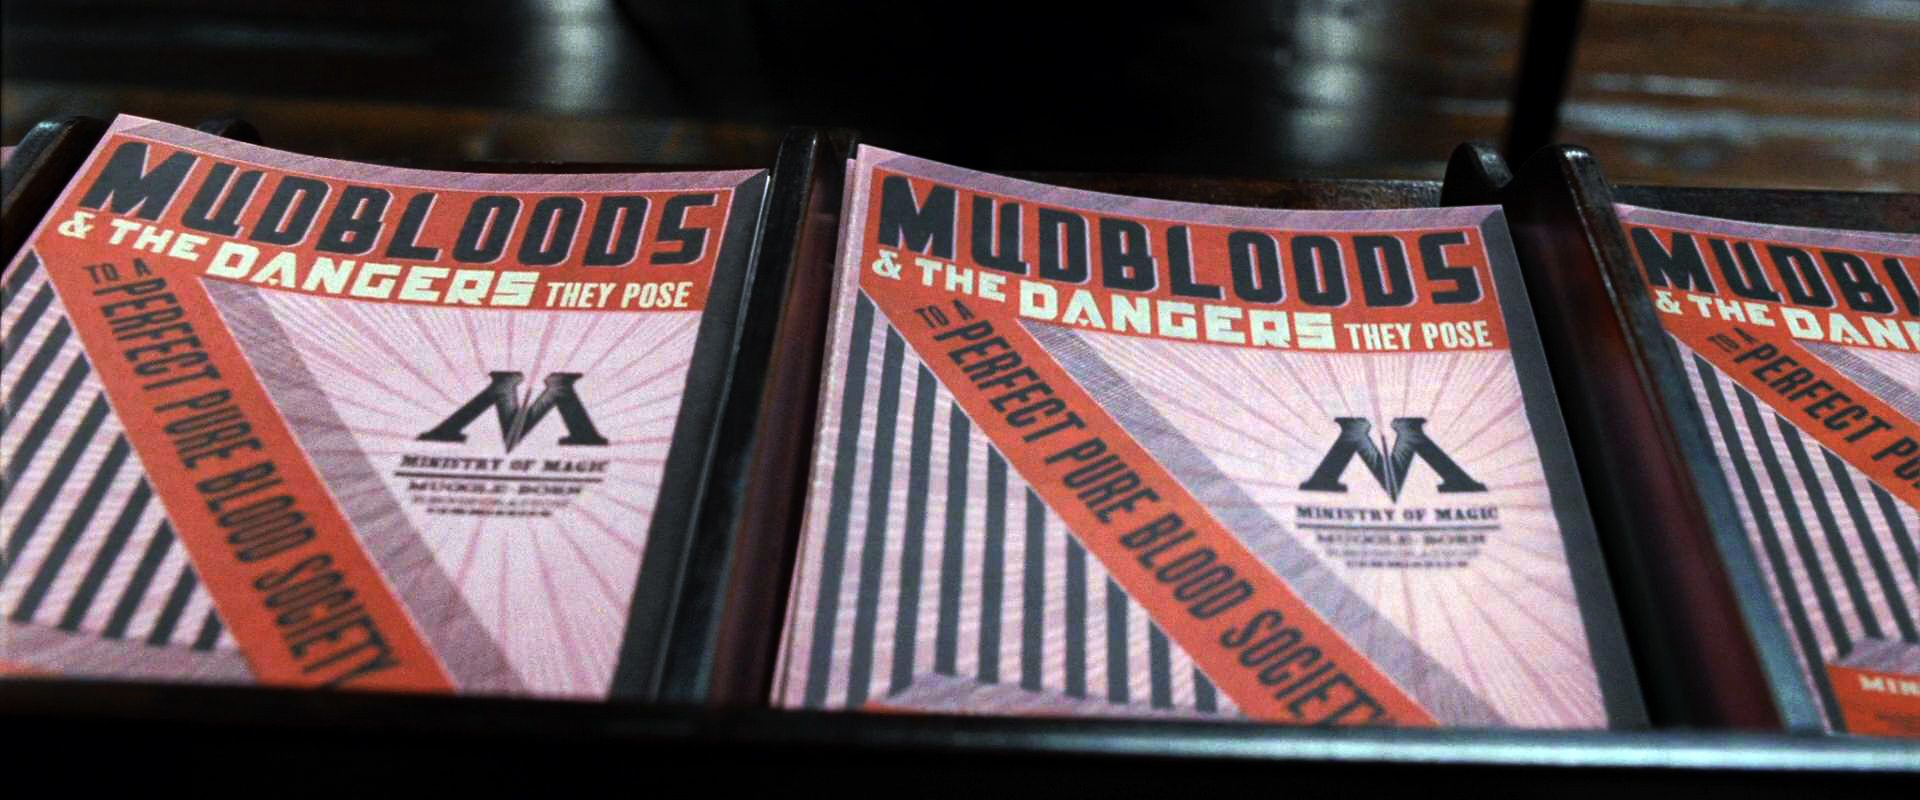 DH1_Mudbloods_and_the_Dangers_they_Pose_pamphlet